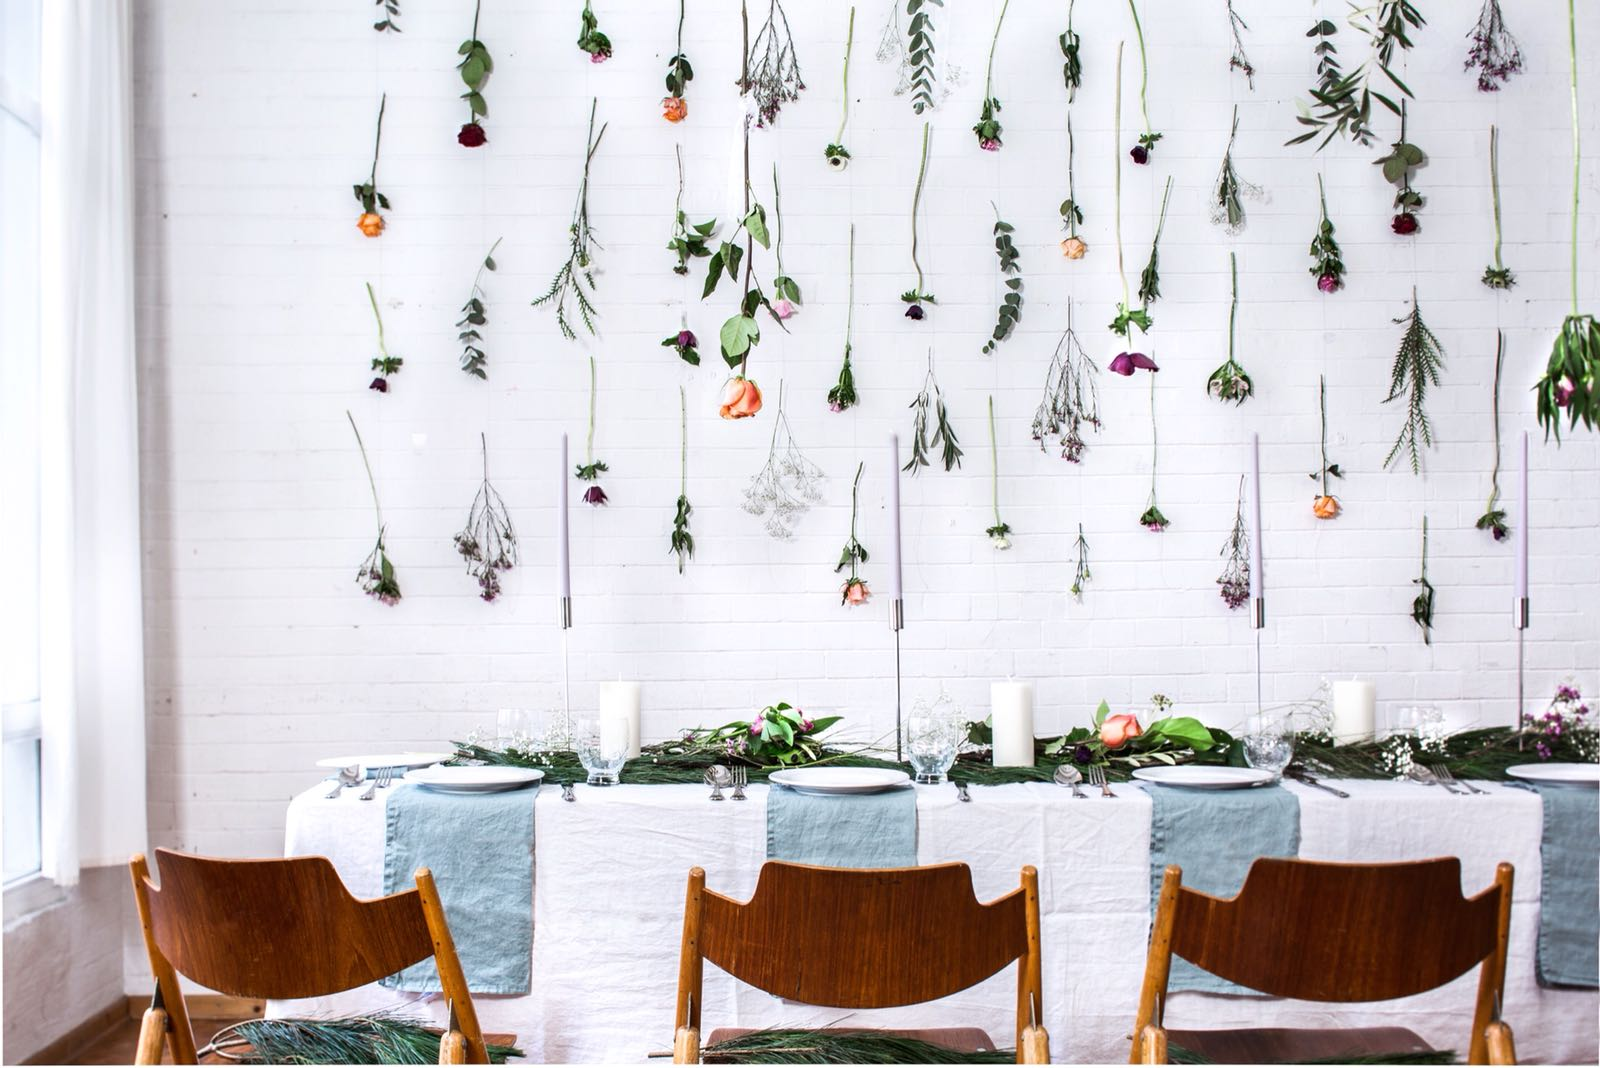 Floral curtain wall hanging and dining setting for an event design project